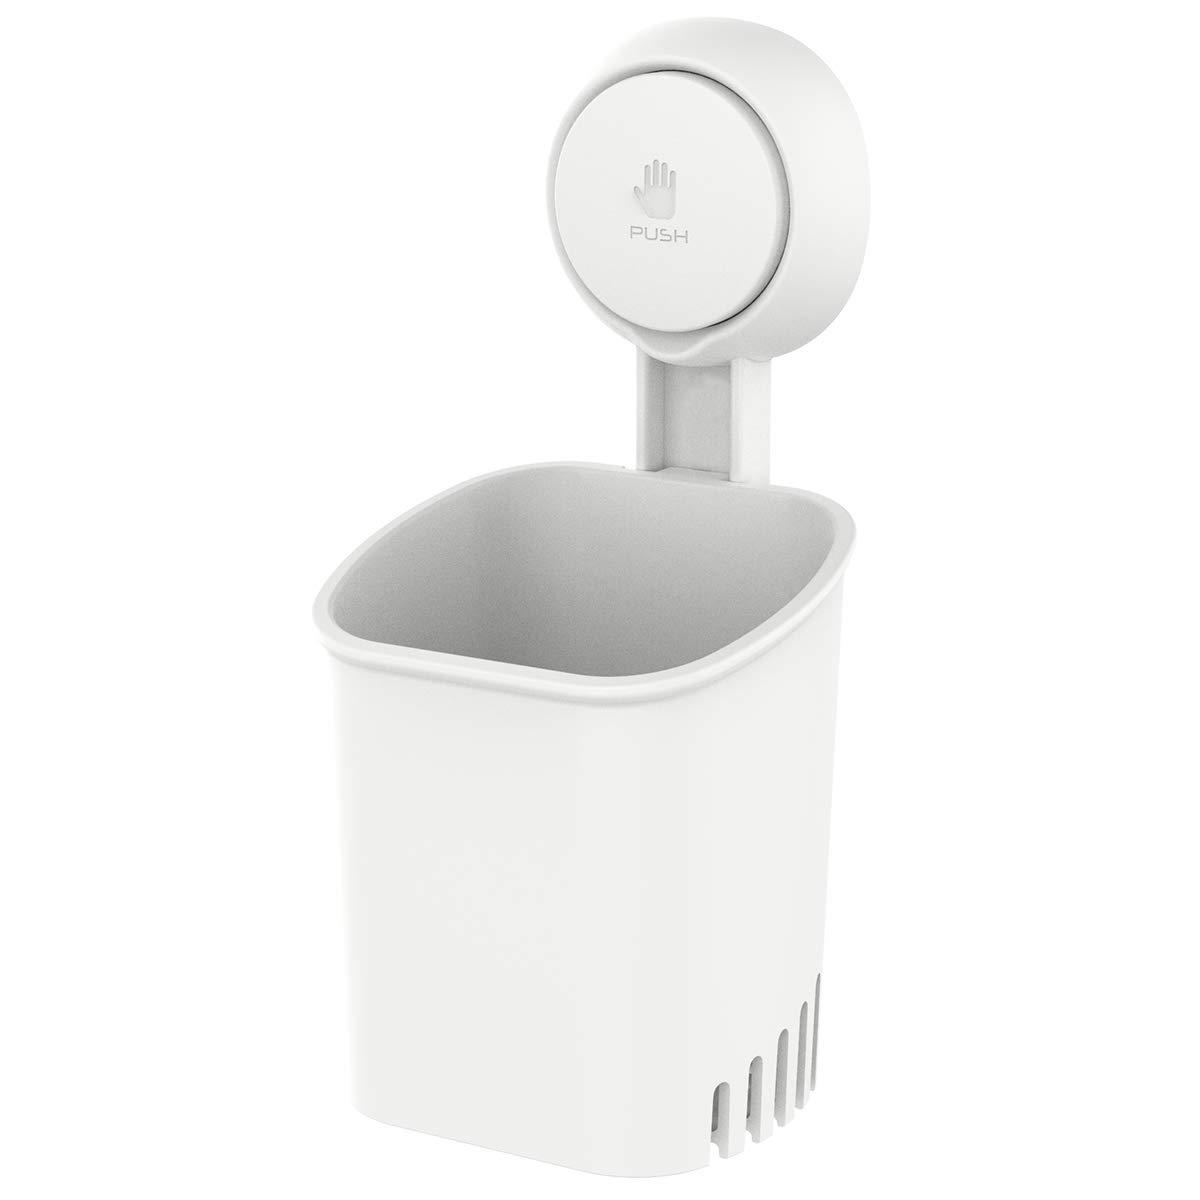 TAILI Suction Cup Toothbrush Holder Wall Mounted, Power Lock Bathroom Shower Organizer for Electric Toothbrushes, Toothpaste, Shaver, Razor and Makeup Brush, No Drill or Nail Needed - White by TAILI